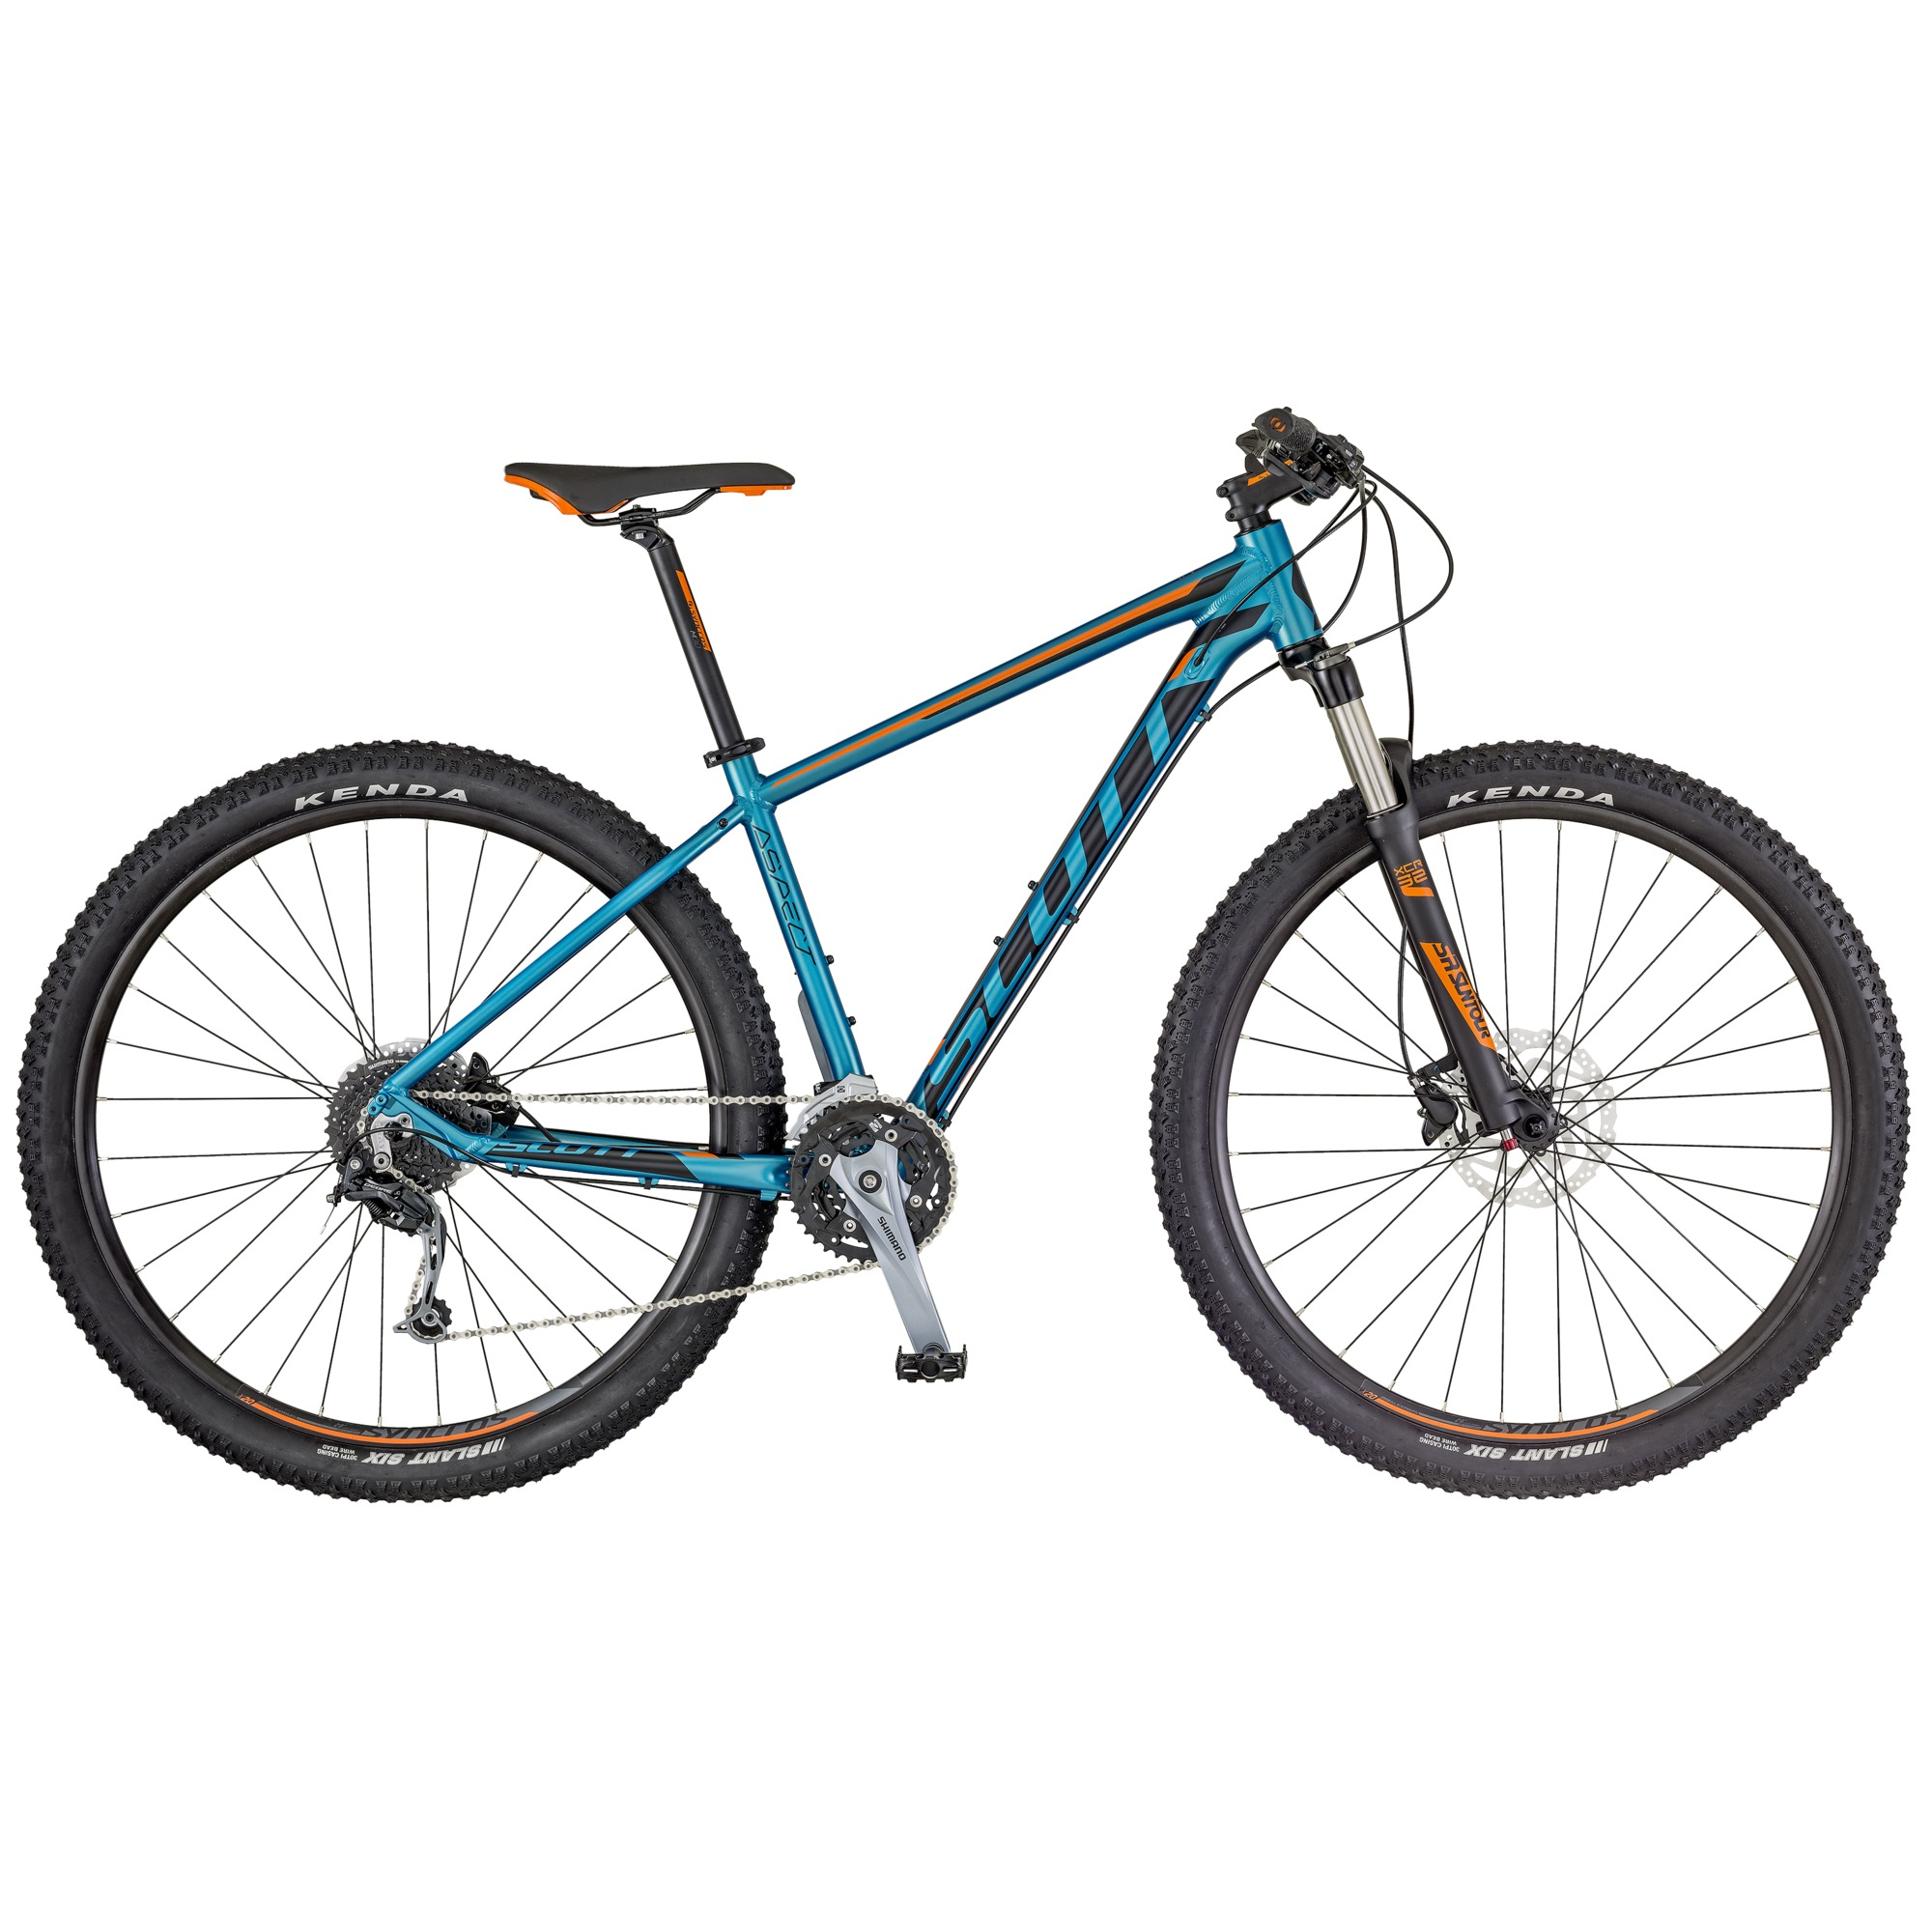 SCOTT Aspect 730 Bike blau/orange XL - Zweirad Homann